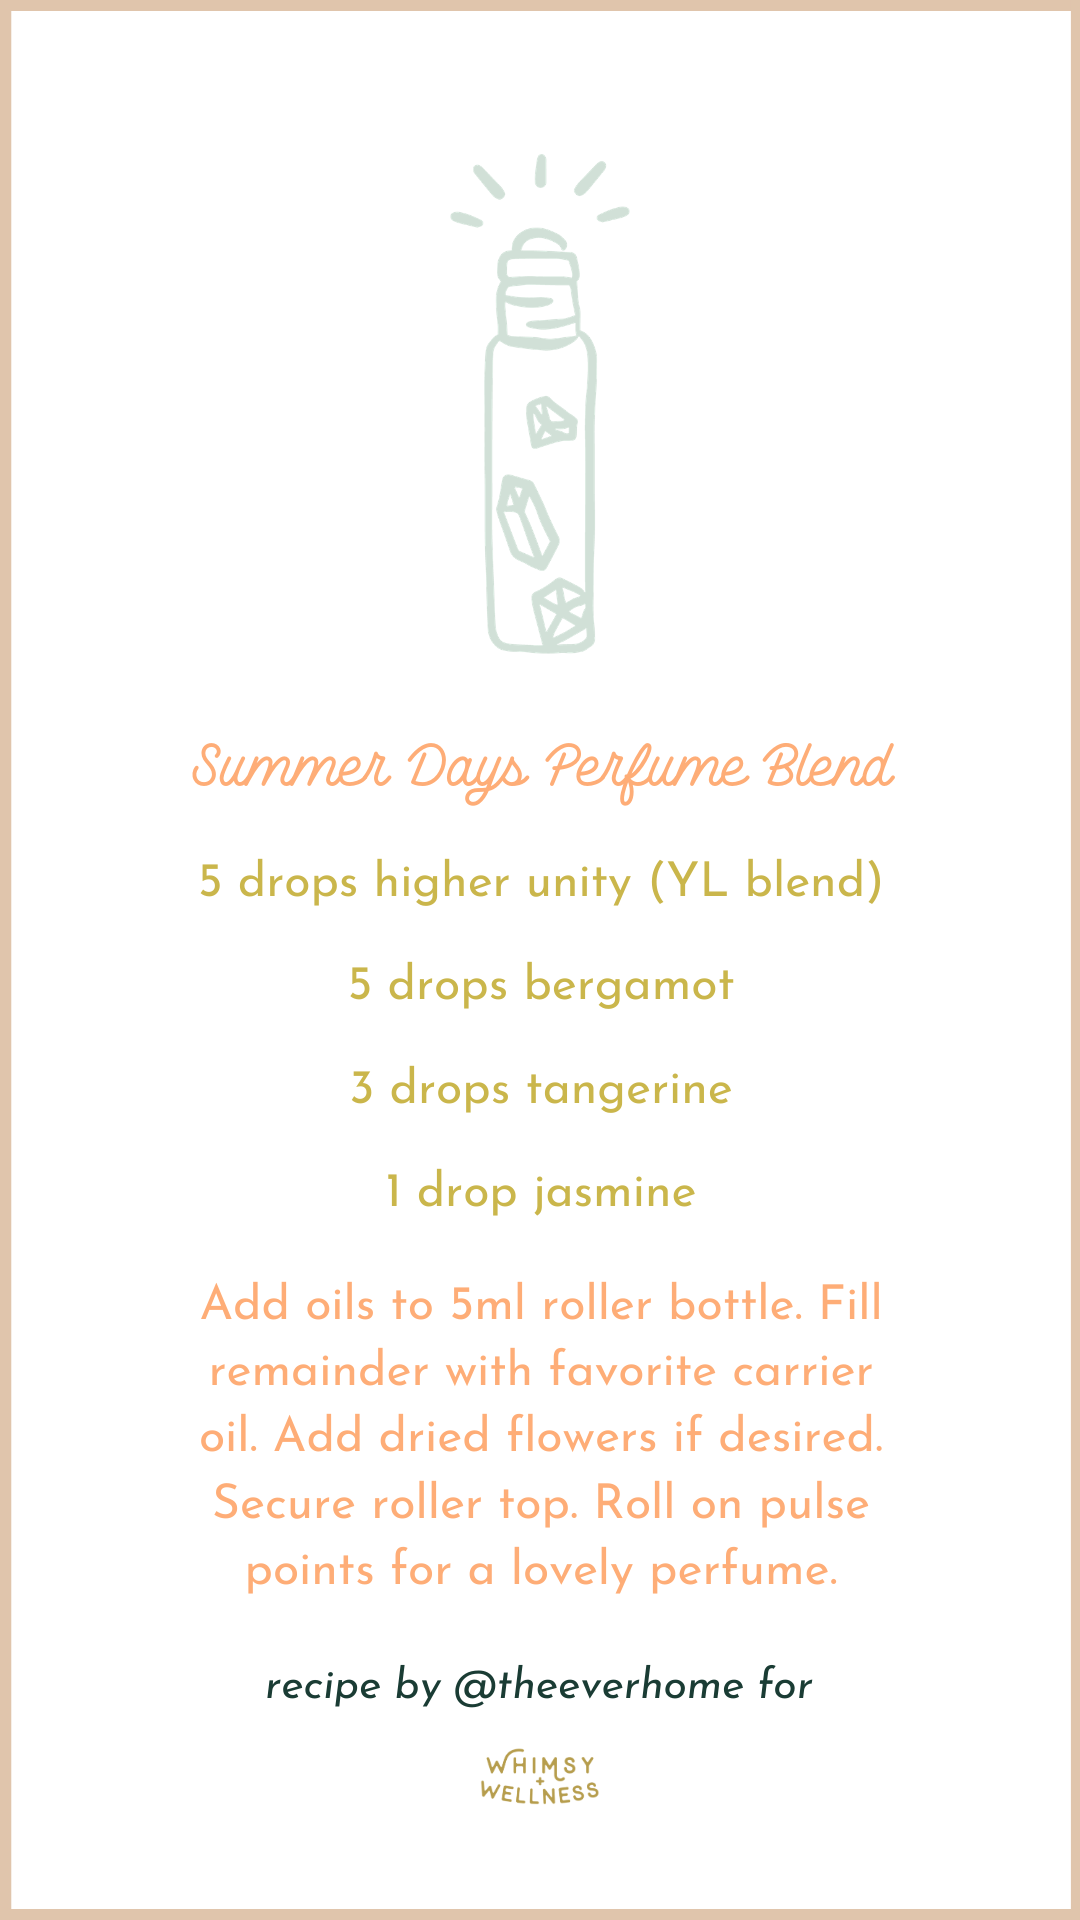 Summer Days Perfume Roller Blend with young living essential oils Whimsy + Wellness